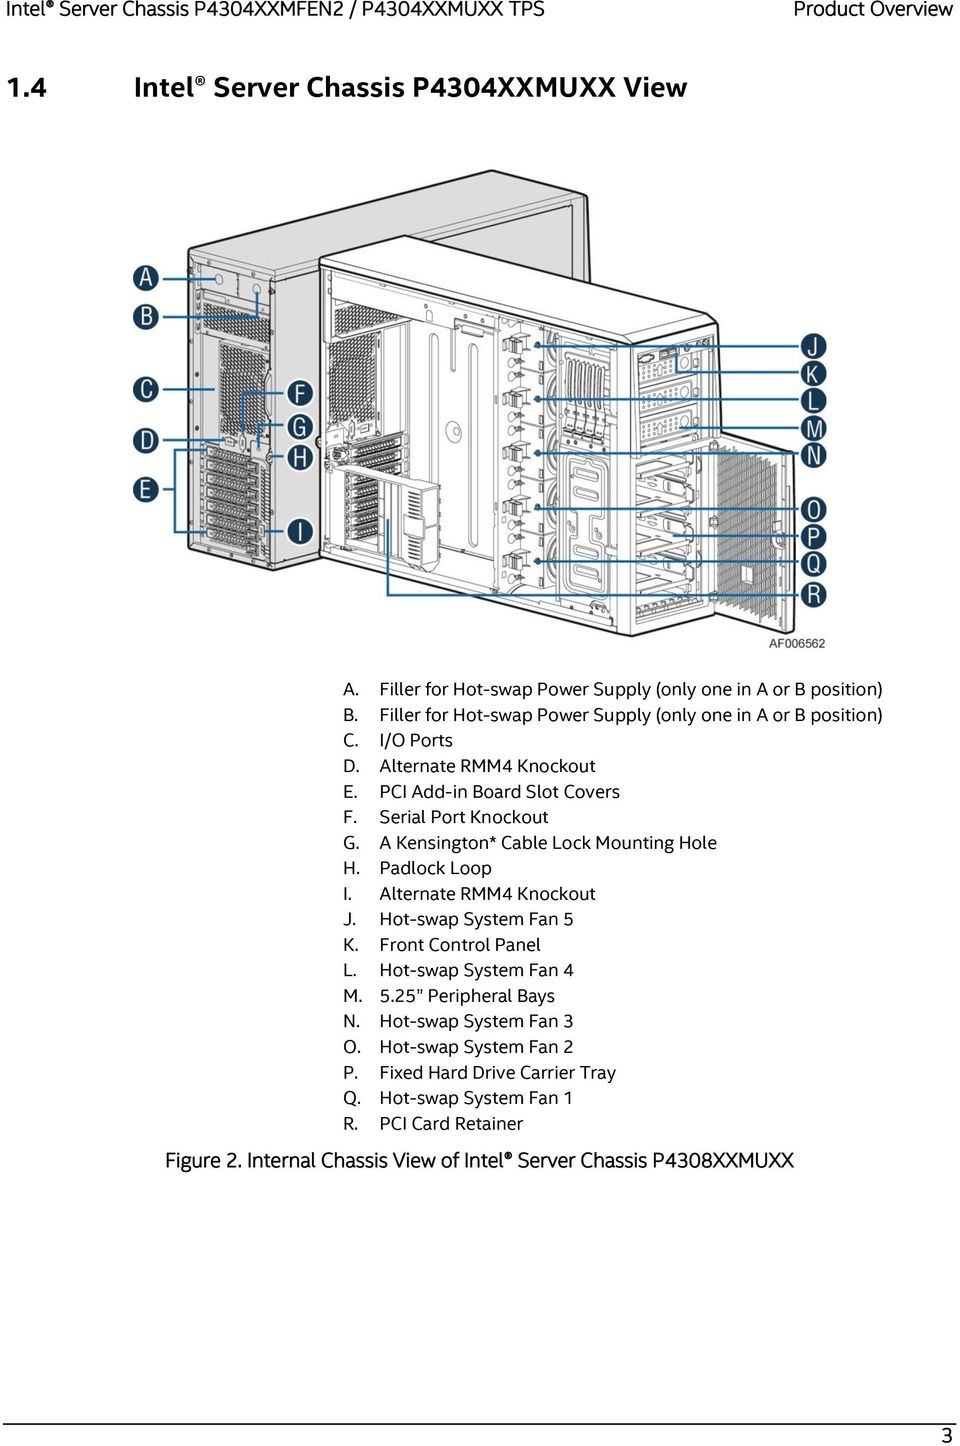 Intel Server Chassis P4304xxmfen2 P4304xxmuxx Pdf Compatible Systems Multiconnector Cable Diagram And Pinout Table A Kensington Lock Mounting Hole H Padlock Loop I Alternate Rmm4 Knockout